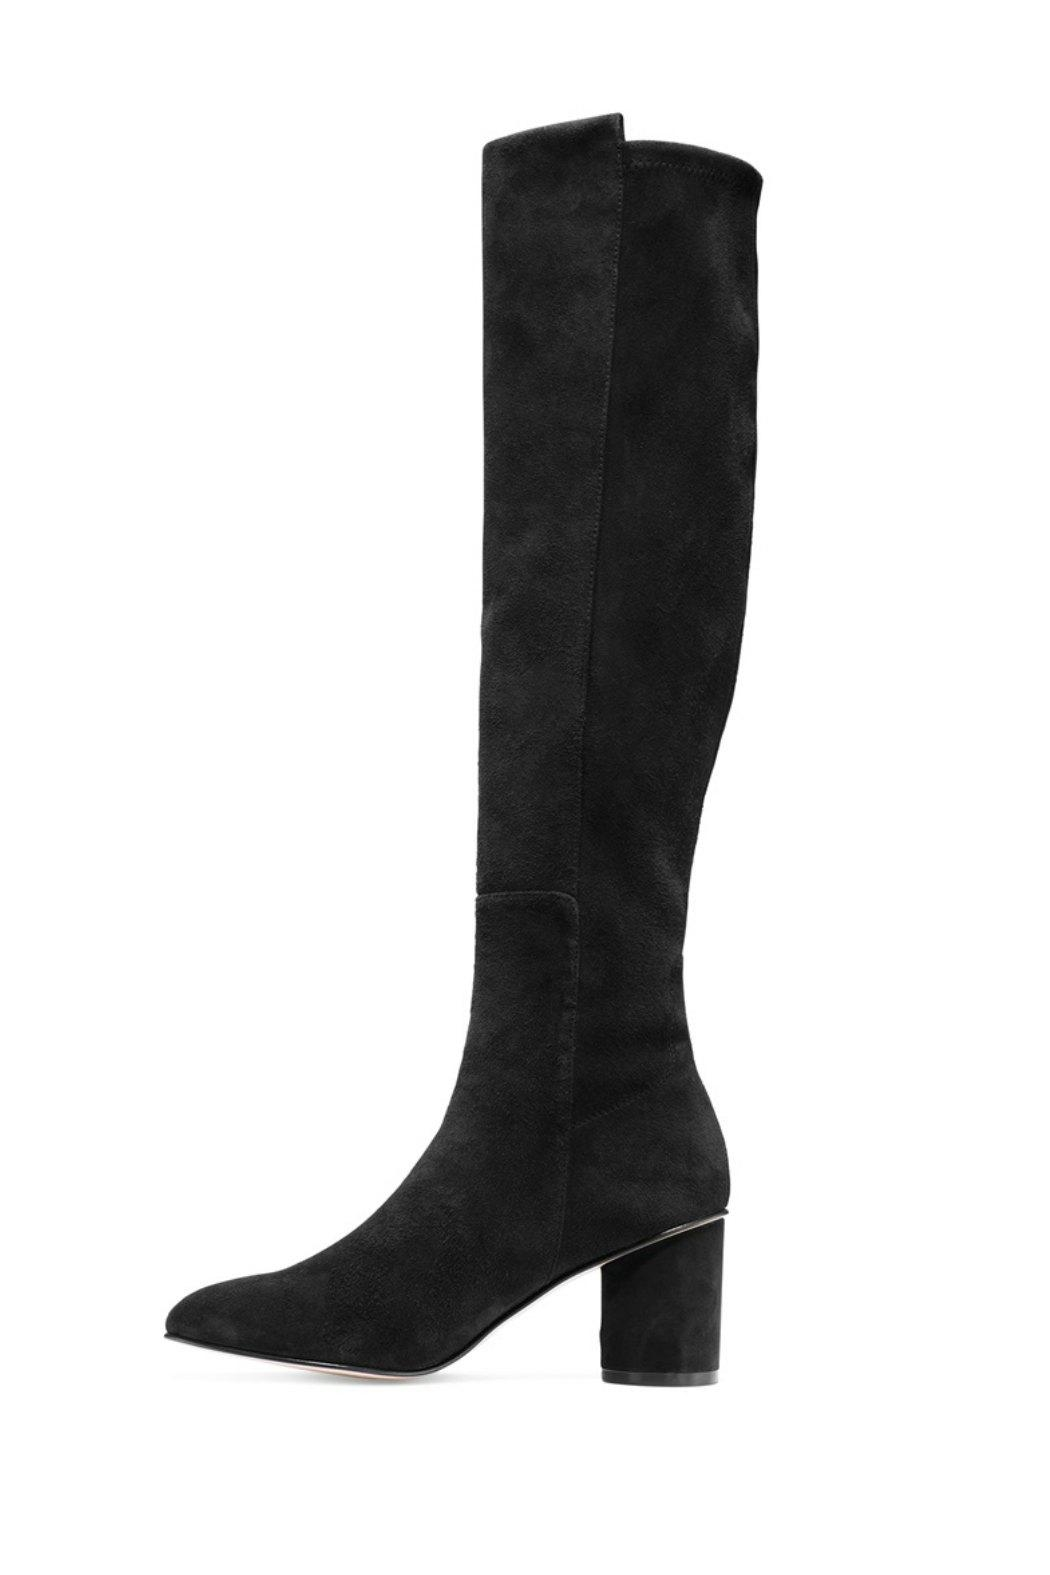 33cdf22cae7 Stuart Weitzman Eloise Knee Boot from New Hampshire by Stiletto ...